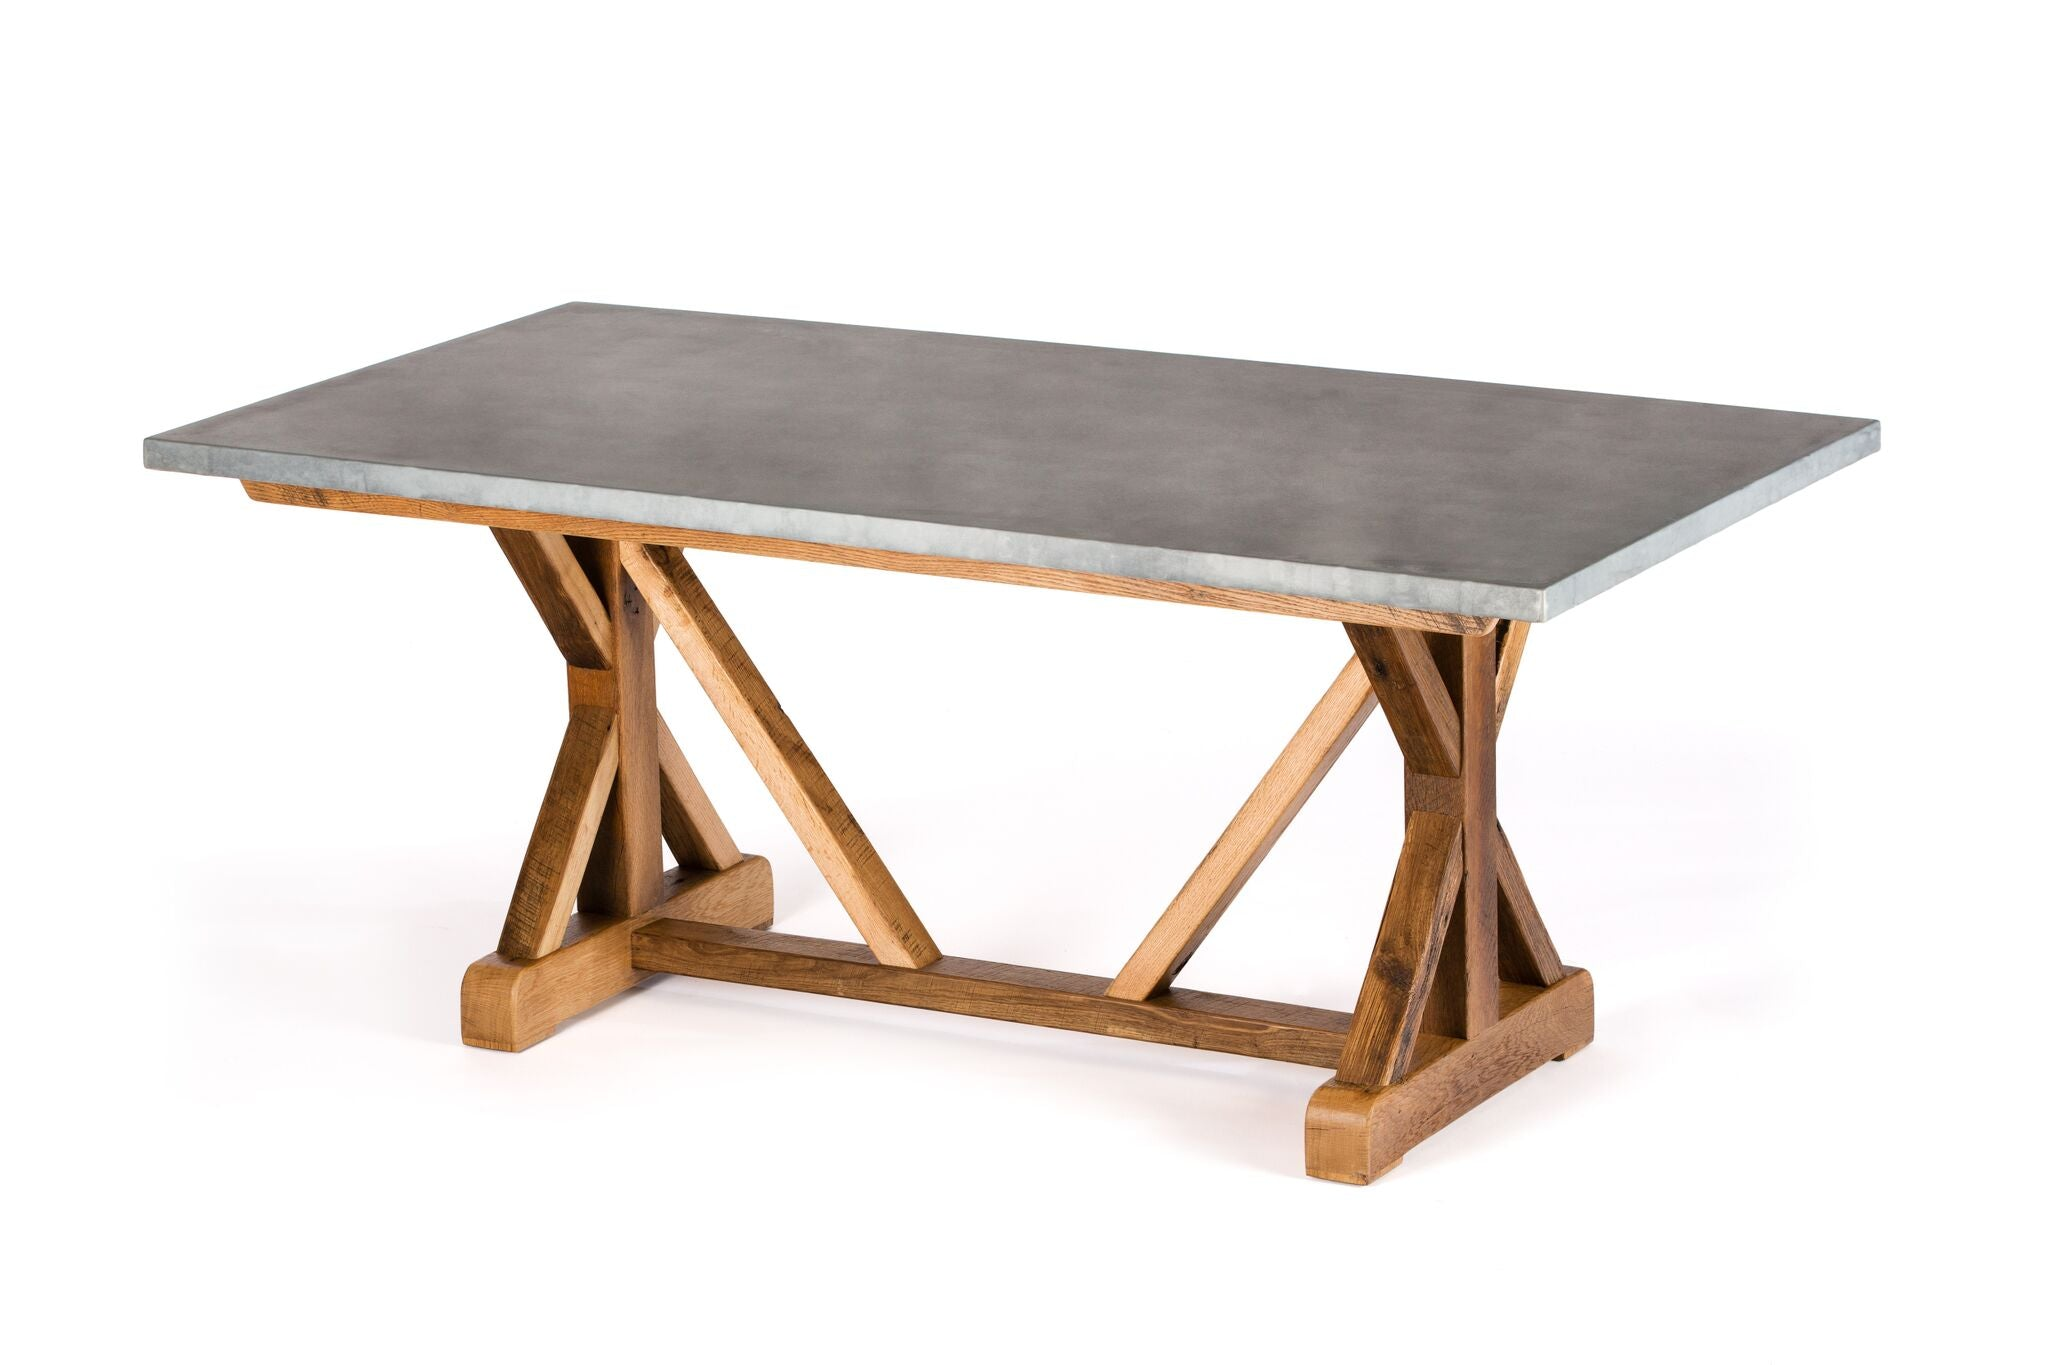 "Zinc Rectangular Table | French Trestle Table | CLASSIC | Dark Black Walnut | CUSTOM SIZE 60""L 37""W 30""H 